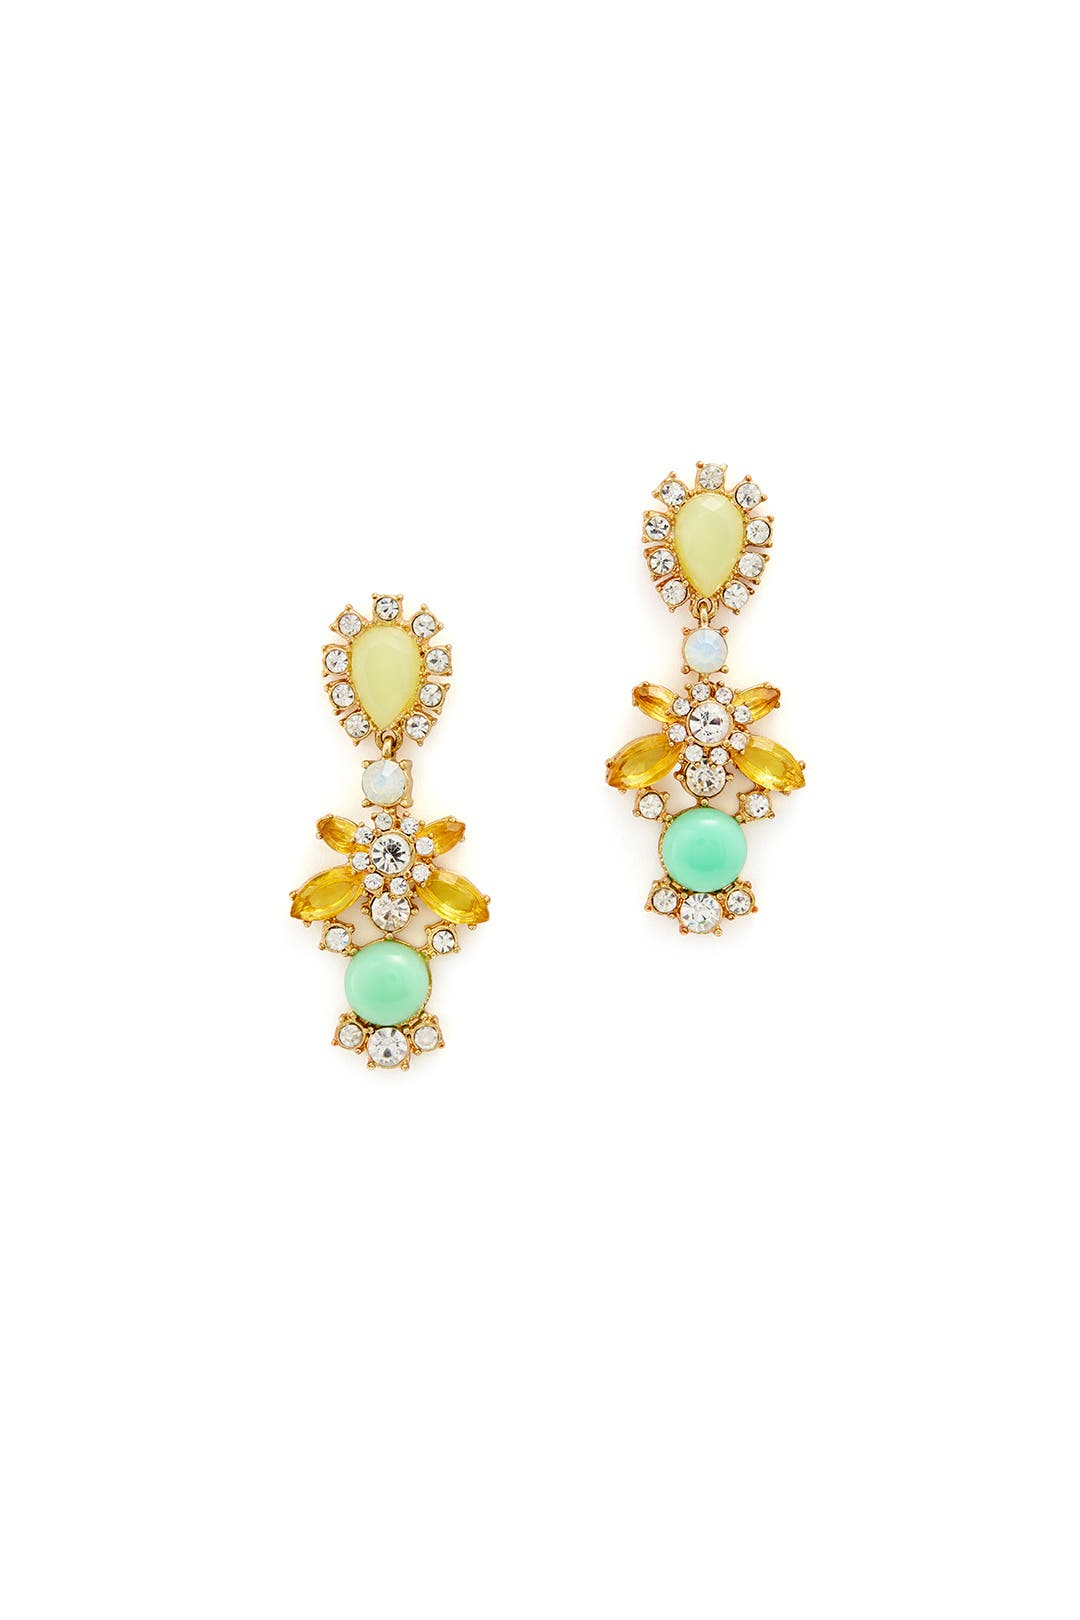 Darling Daffodil Drops by Slate & Willow Accessories